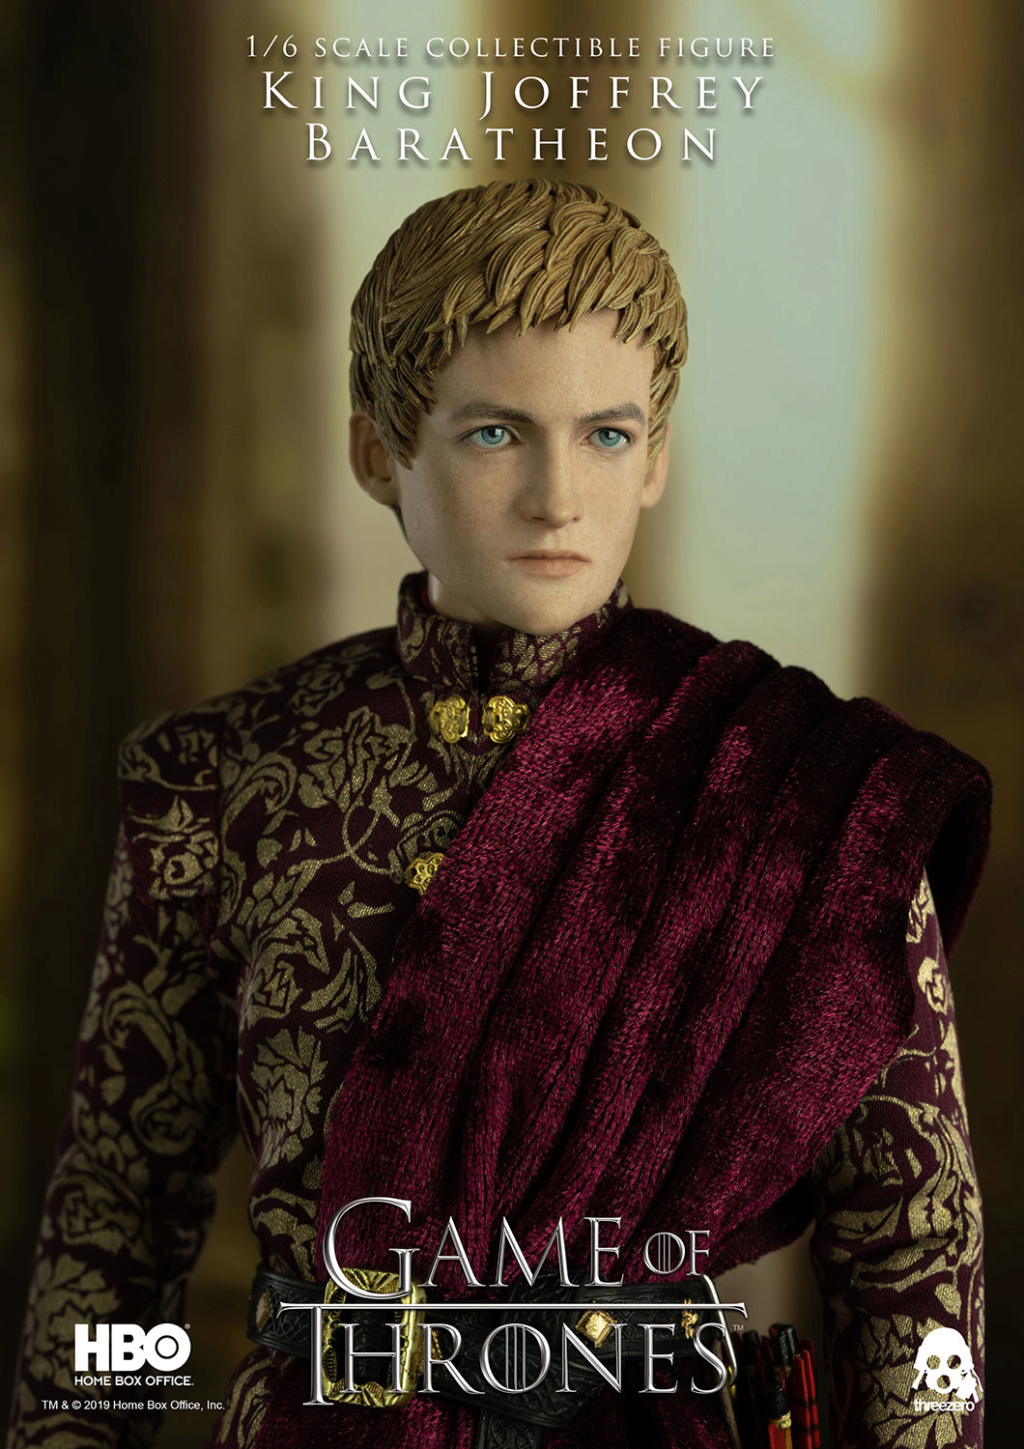 TVShow - NEW PRODUCT: ThreeZero: 1/6 scale Game of Thrones – King Joffrey Baratheon (Standard edition) & (Deluxe Edition) (UPDATED) Got_kj15